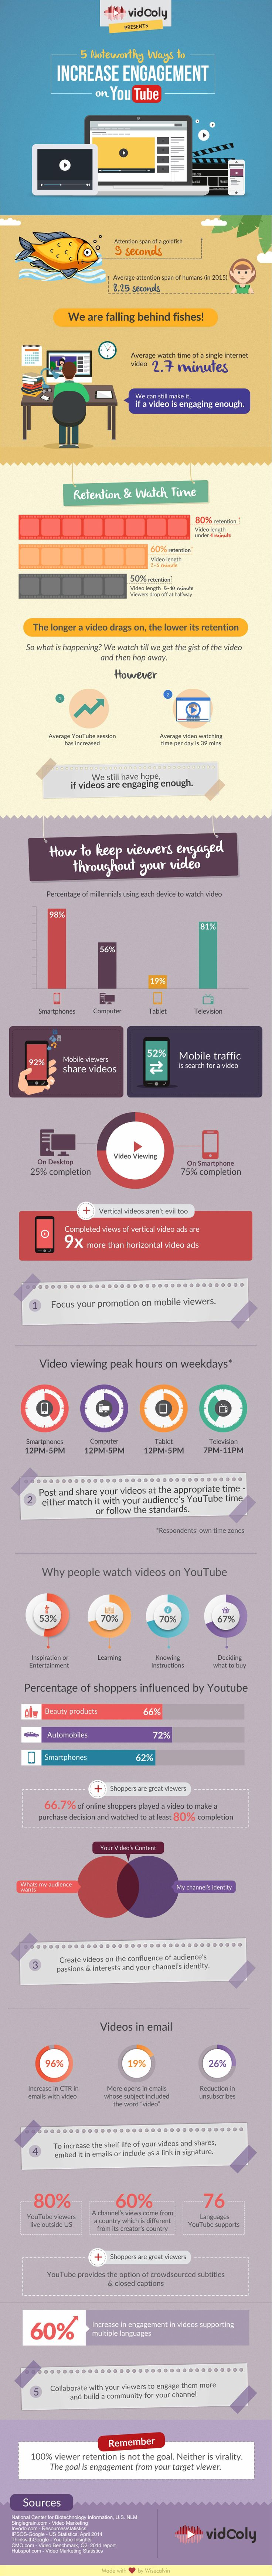 Music youtube free 80 - Music Youtube Free 80 5 Noteworthy Ways To Increase Engagement On Youtube Infographic Download